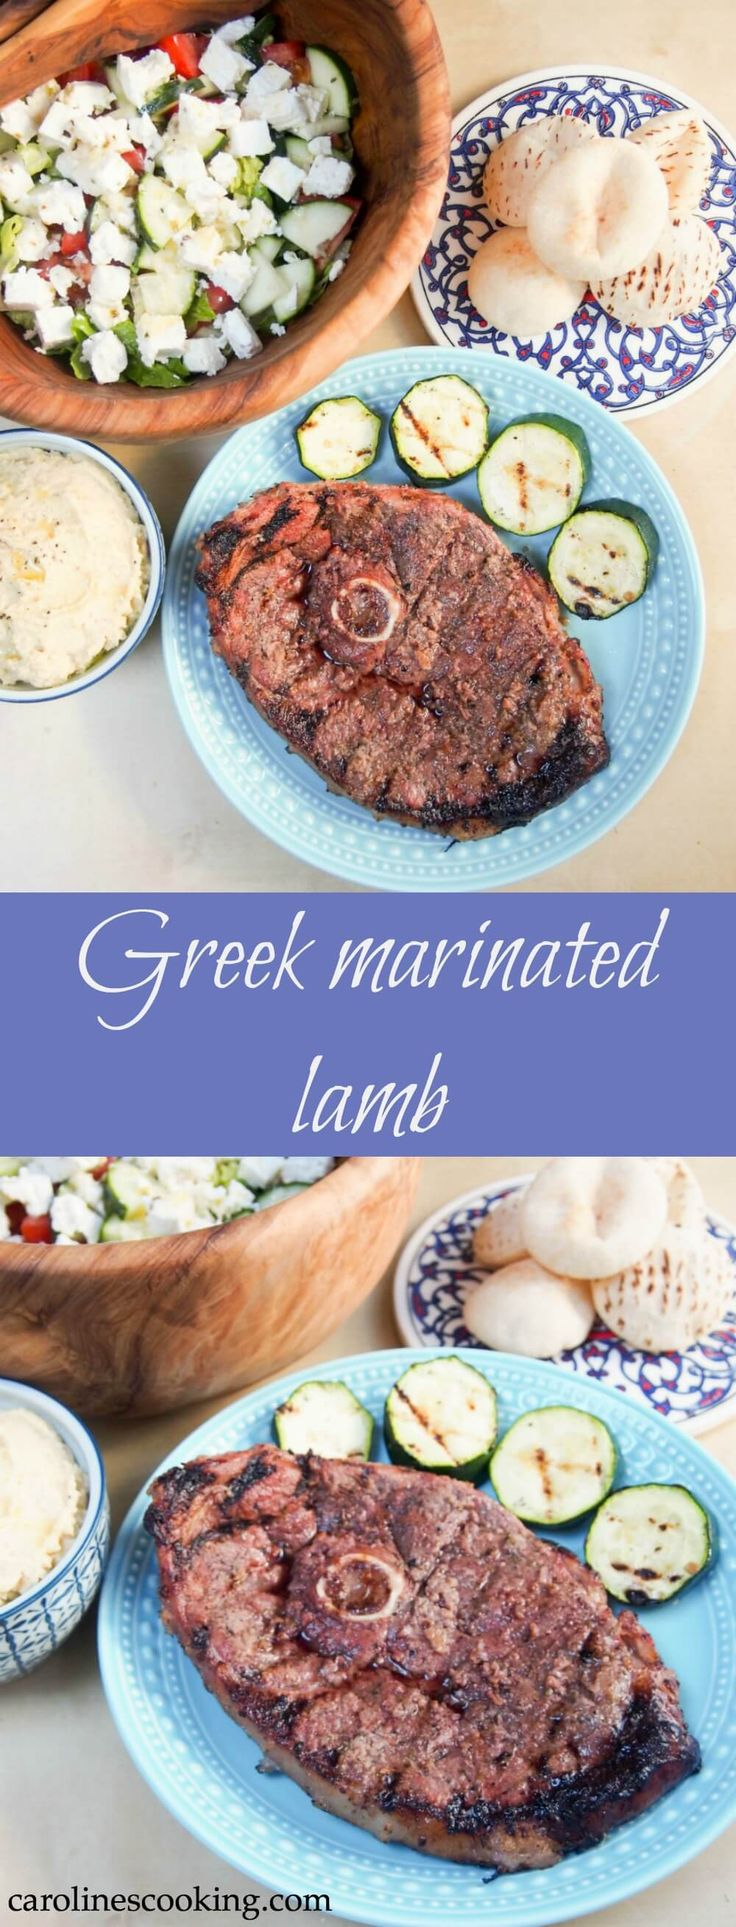 101 best greek food recipes images on pinterest greek recipes greek marinated lamb a really easy marinade gives a delicious flavor to this tasty main greek food recipeslamb forumfinder Image collections